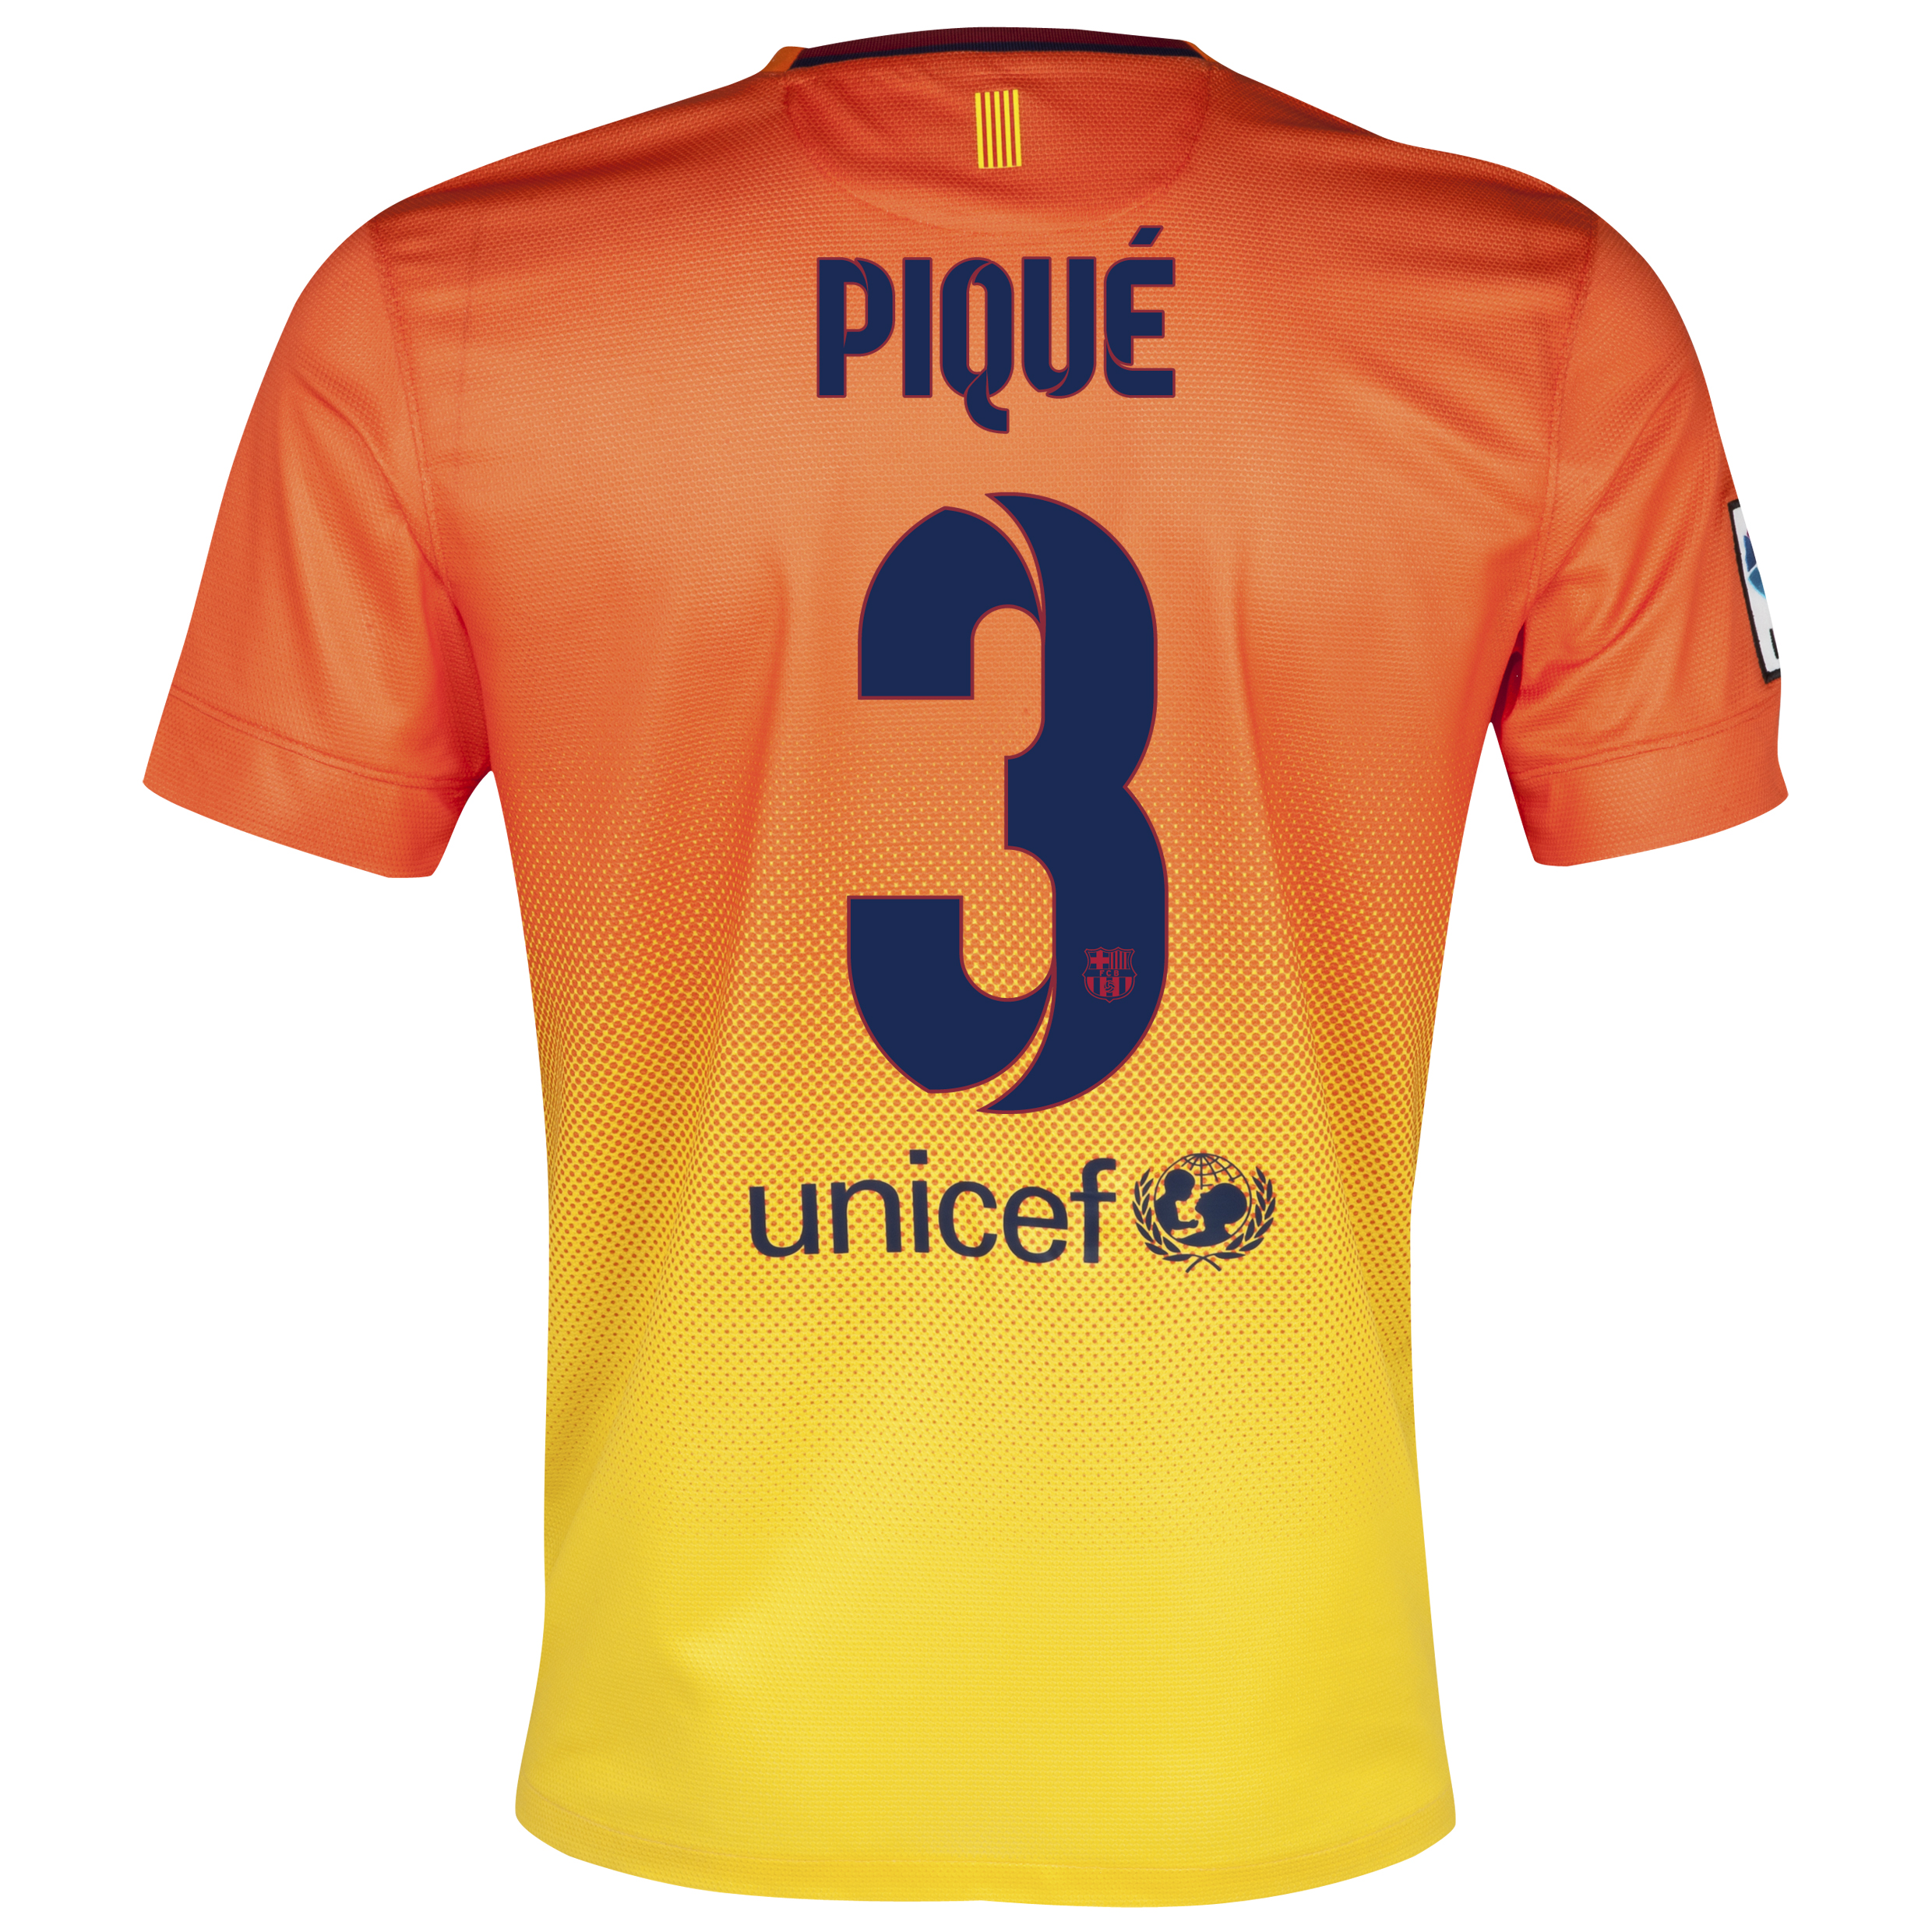 Barcelona Away Shirt 2012/13 with Pique 3 printing